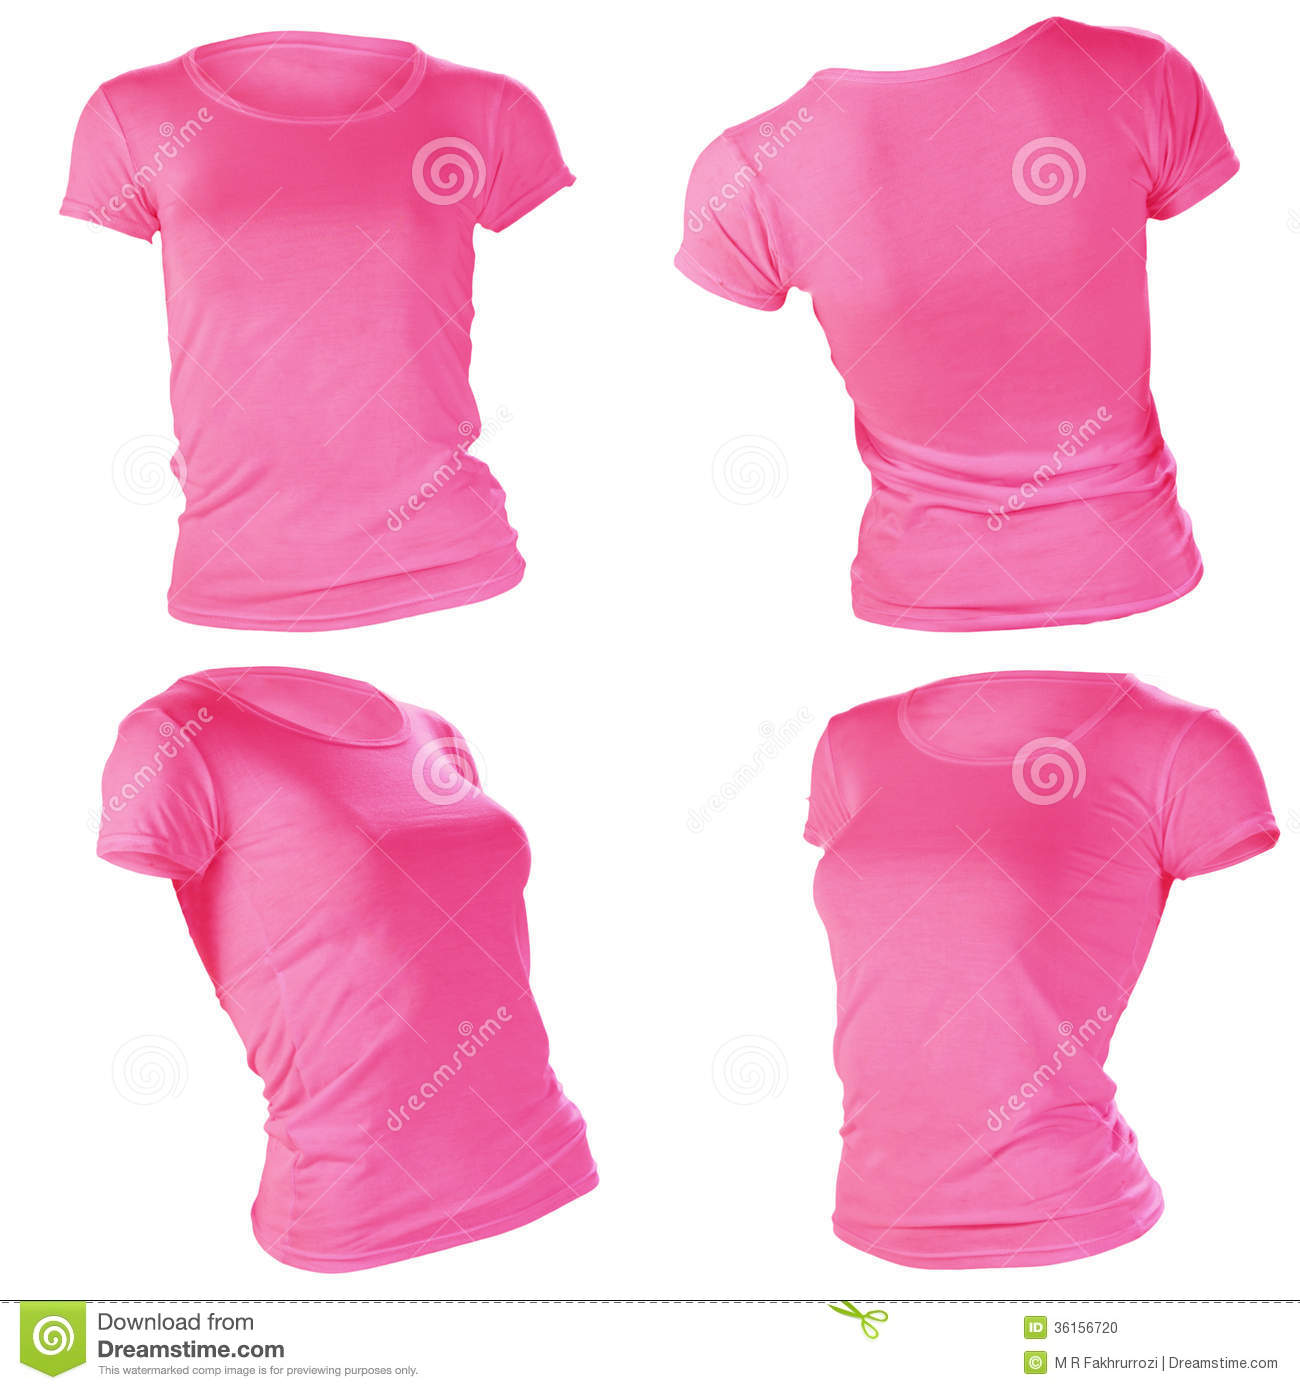 Women's Blank Pink T-shirt Template Stock Photo - Image: 36156720